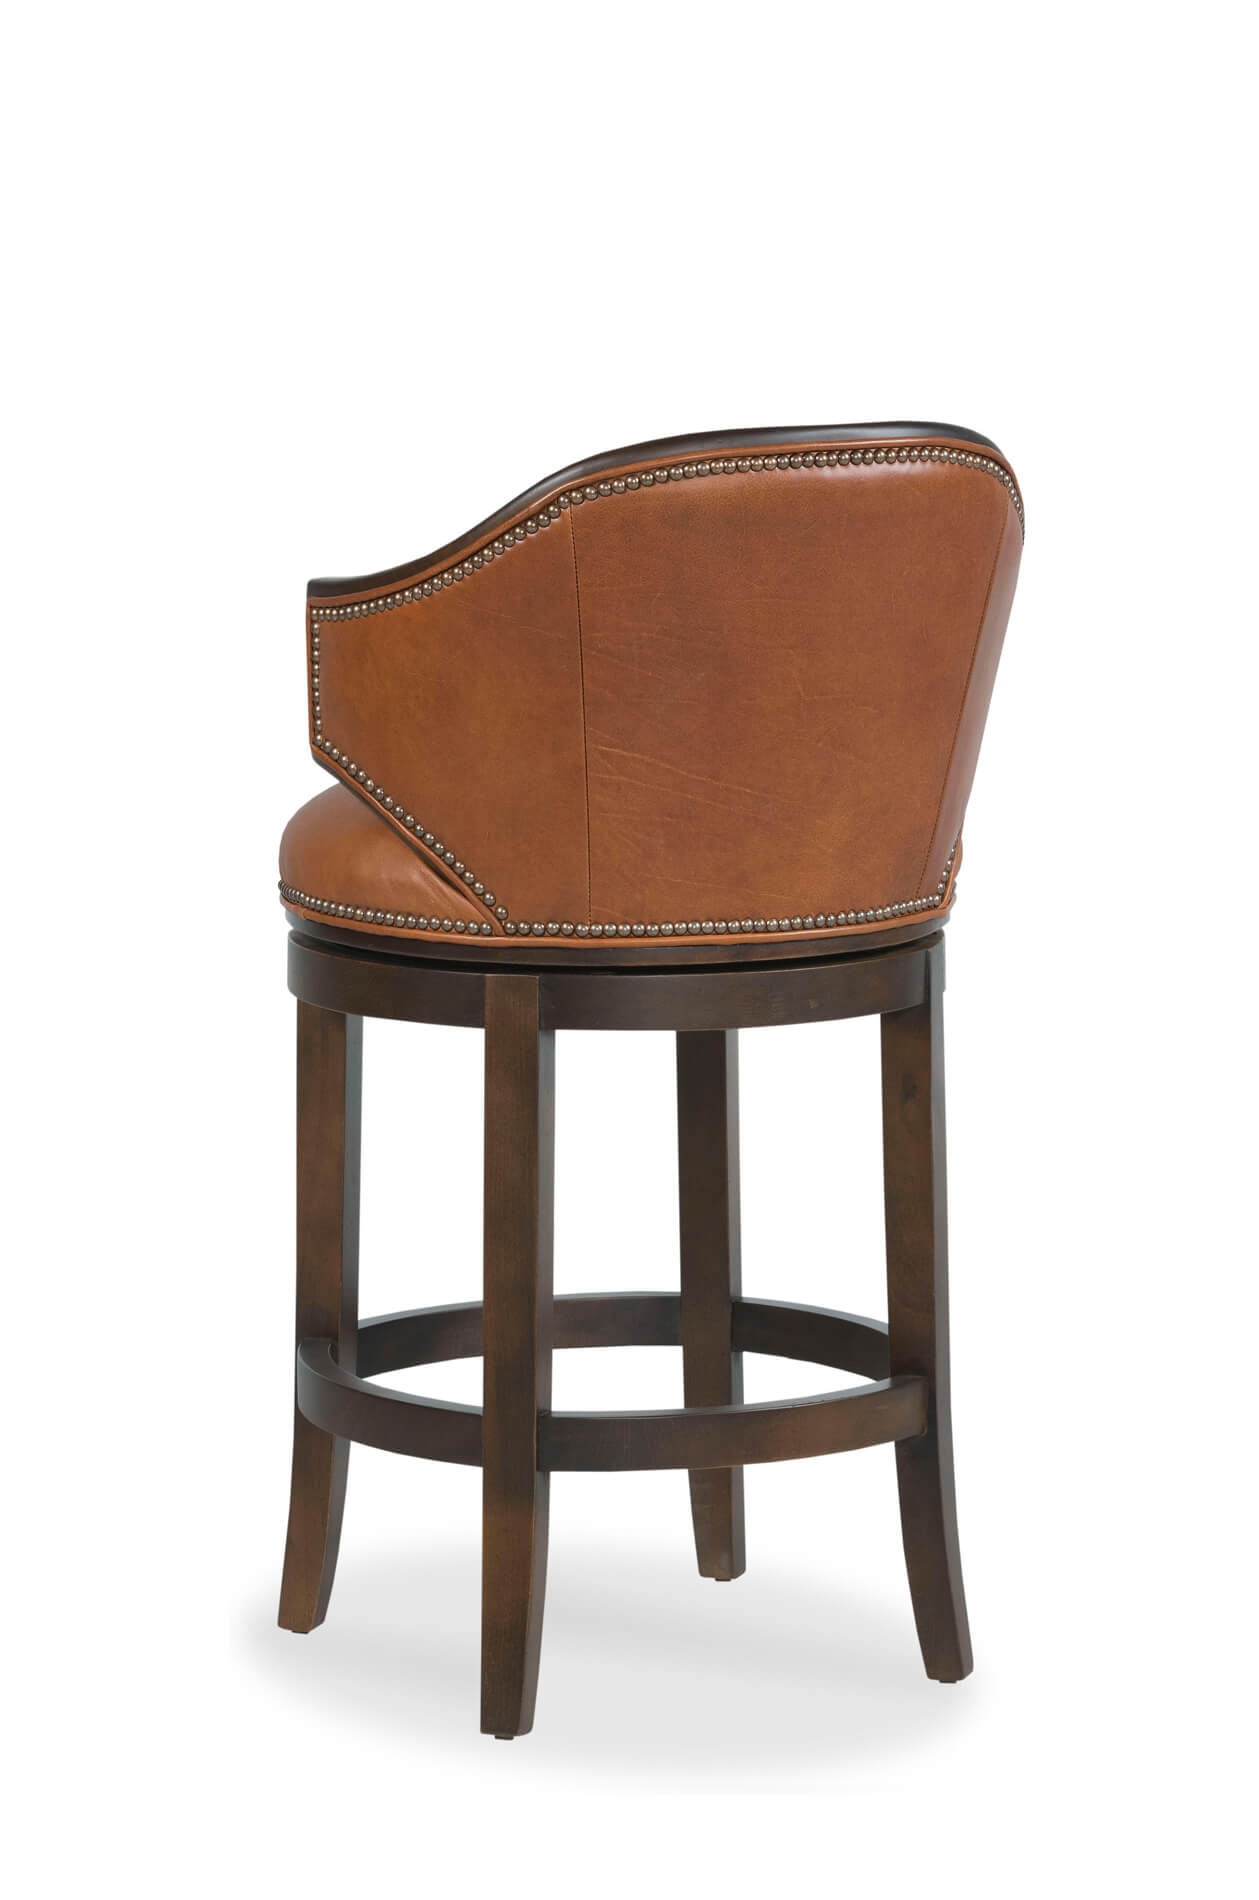 Buy Gimlet Formal Upholstered Wood Swivel Stool W Arms